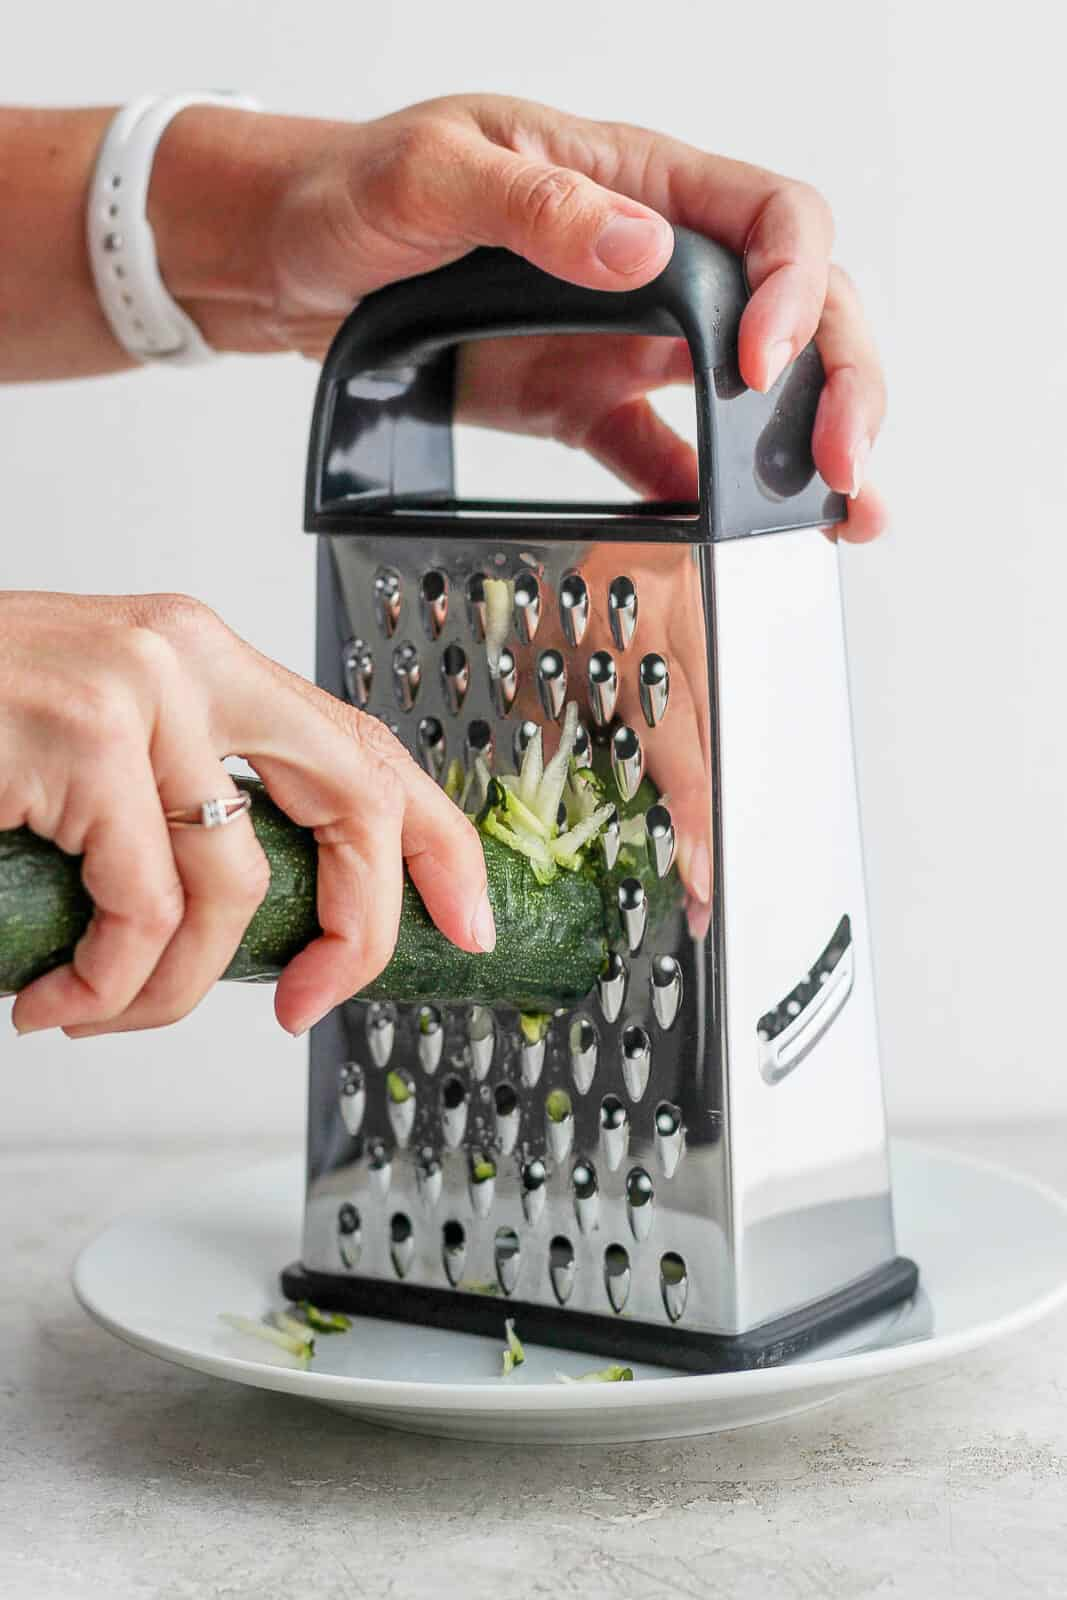 Someone grating zucchini with a box grater.